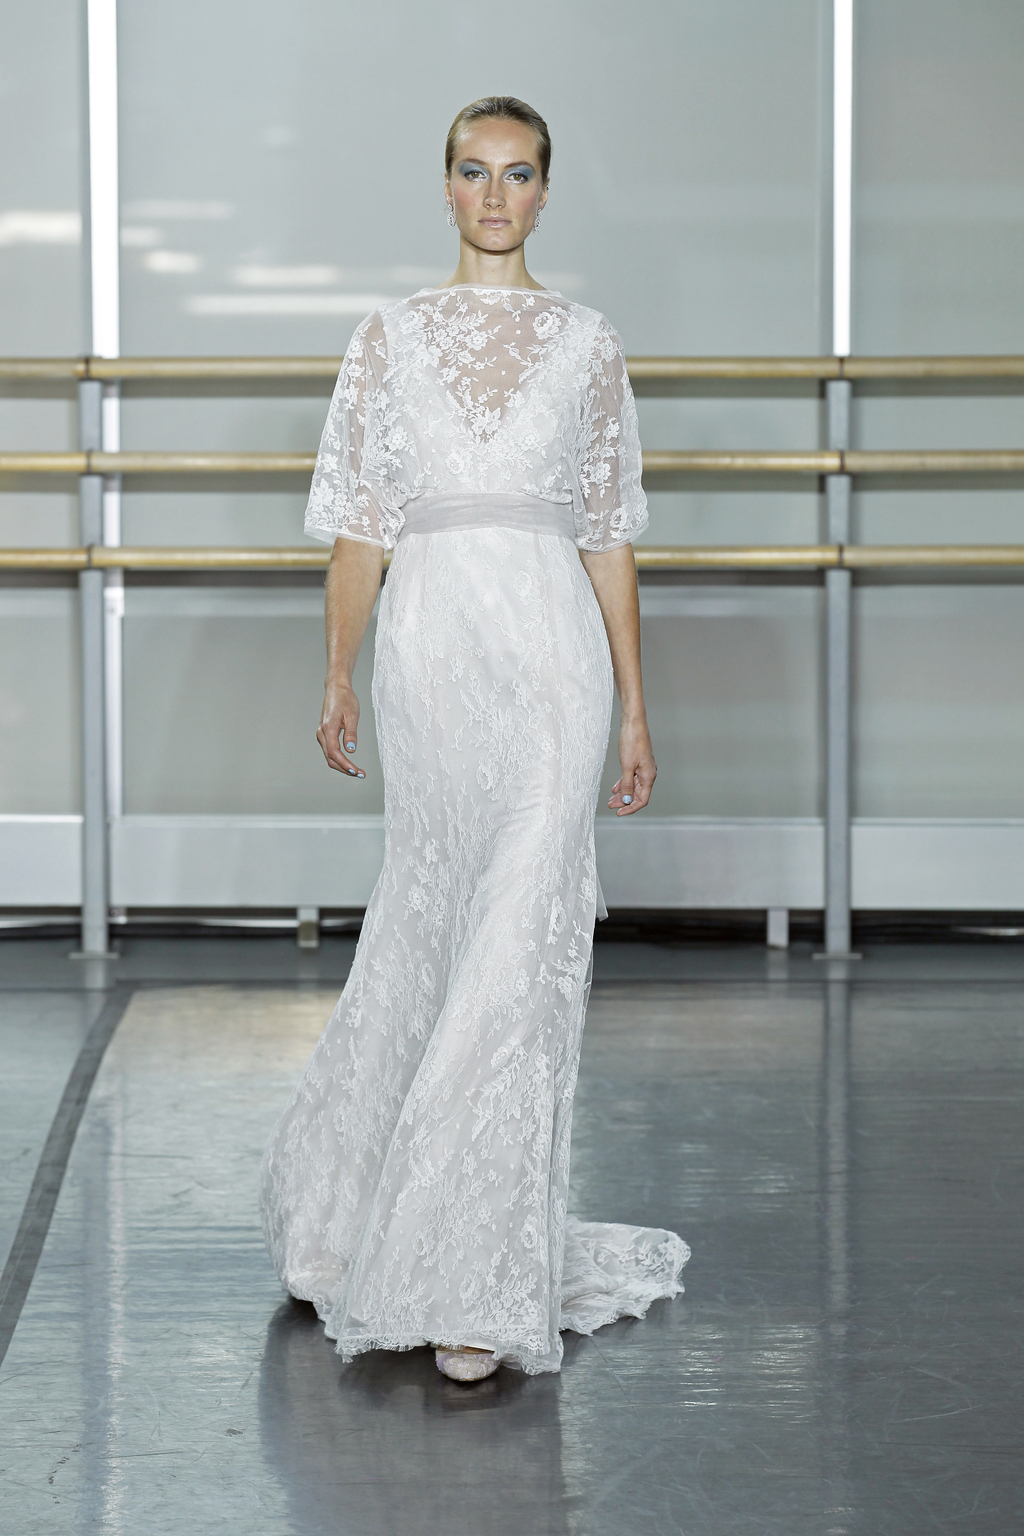 rivini wedding dress fall 2013 bridal gown DELICATA